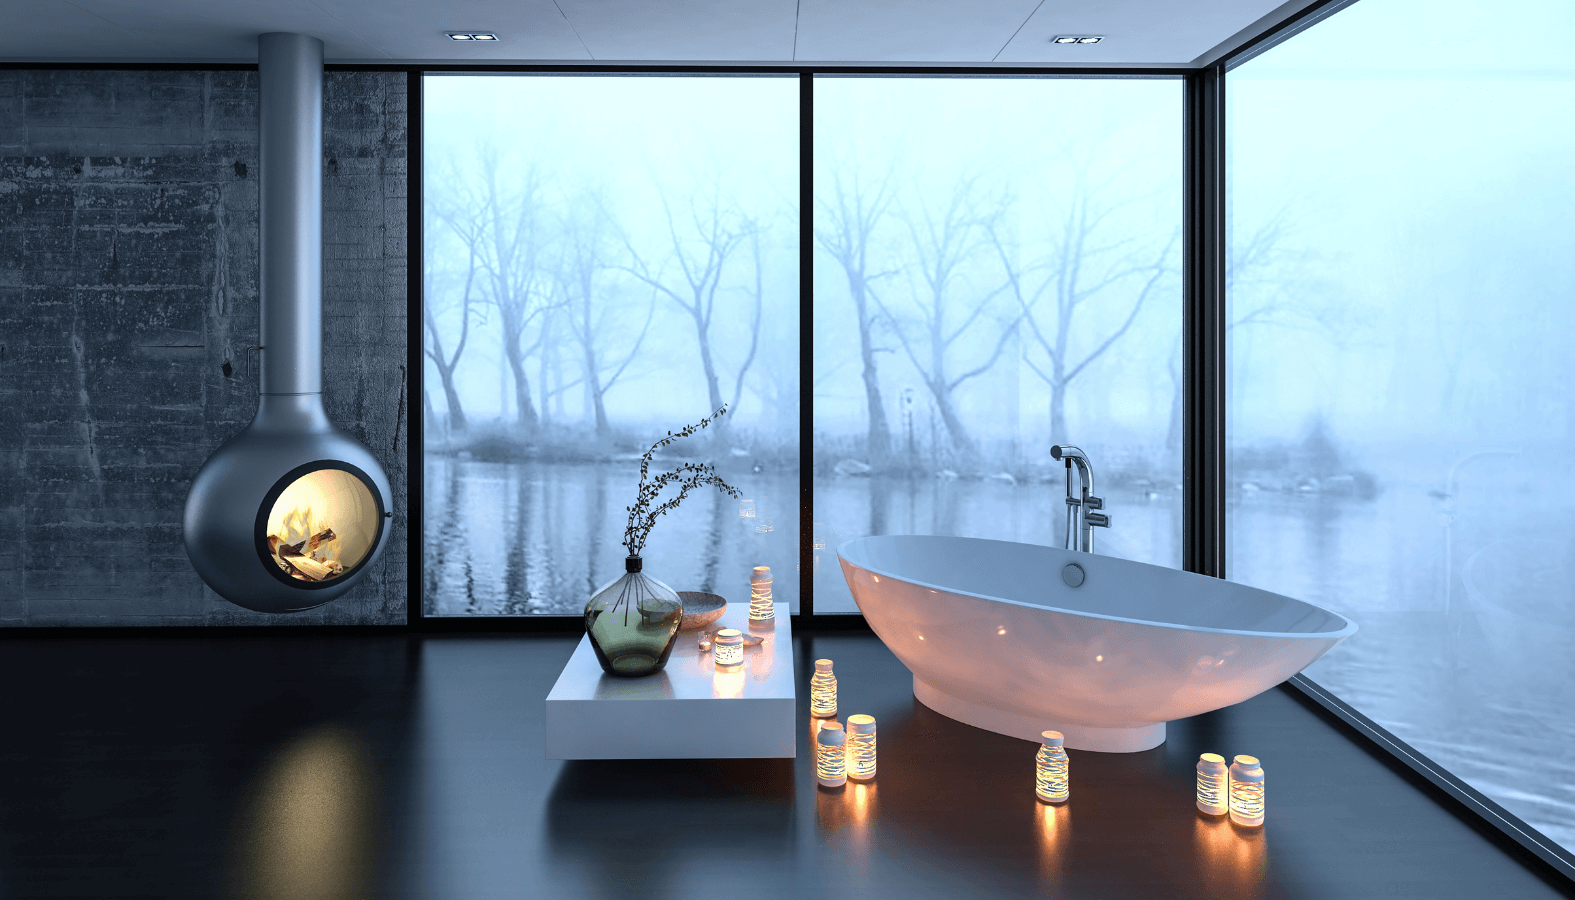 8 Brilliant Master Bathroom Ideas That Look Magical (Create Your Dream Bathroom!)